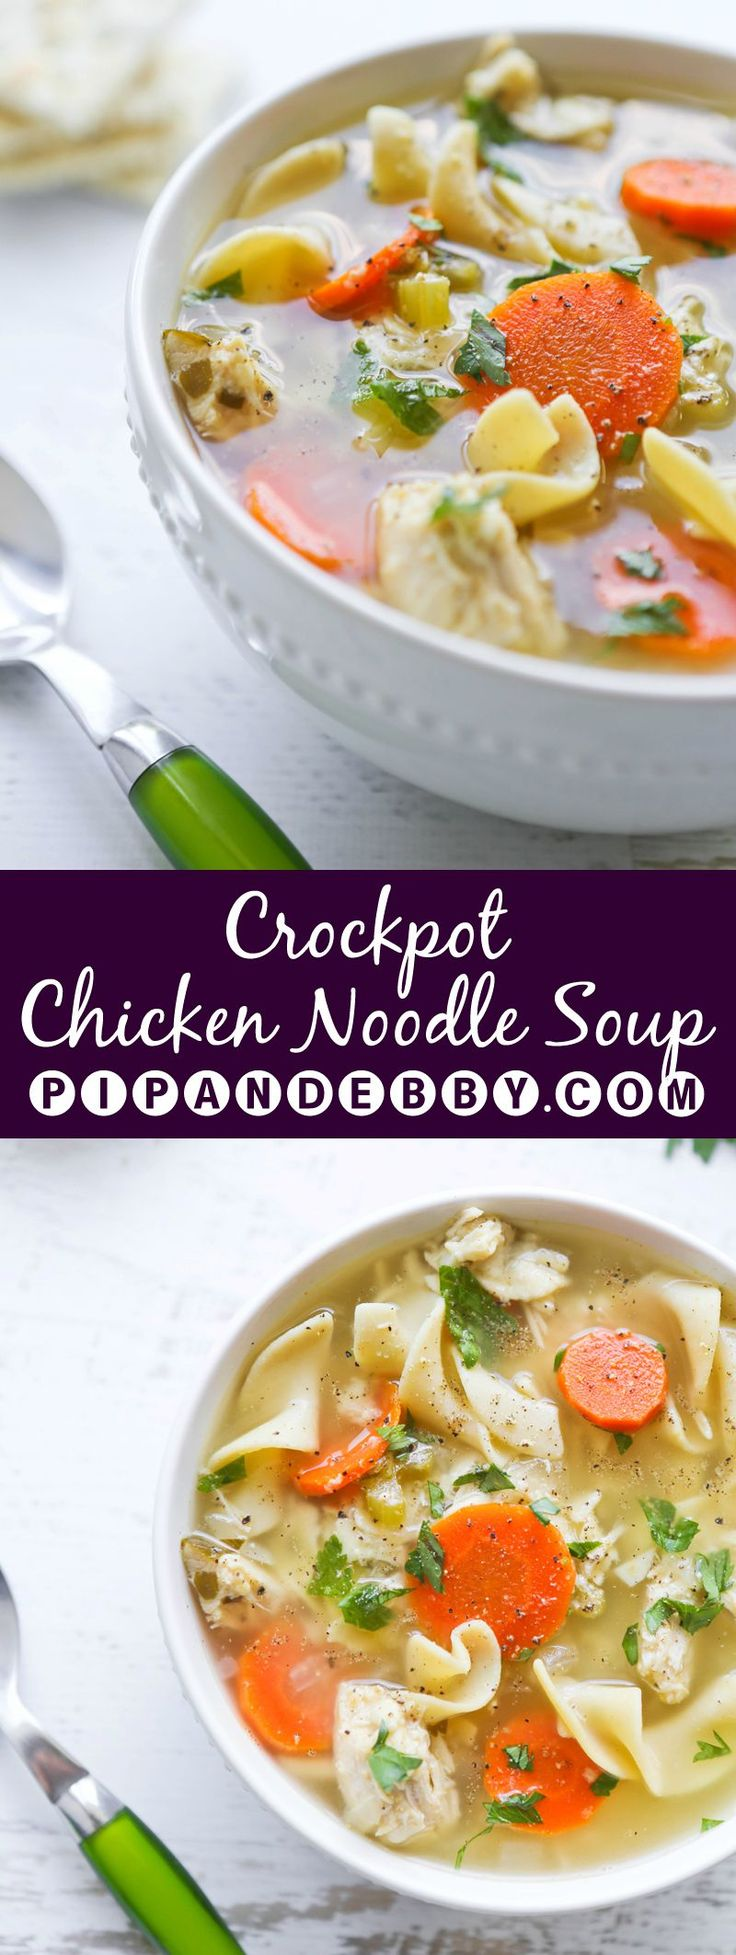 Crockpot Chicken Noodle Soup   Recipe in 2018   Slow Cooker/Crock Pot Recipes   Pinterest   Soup, Noodle Soup and Recipes